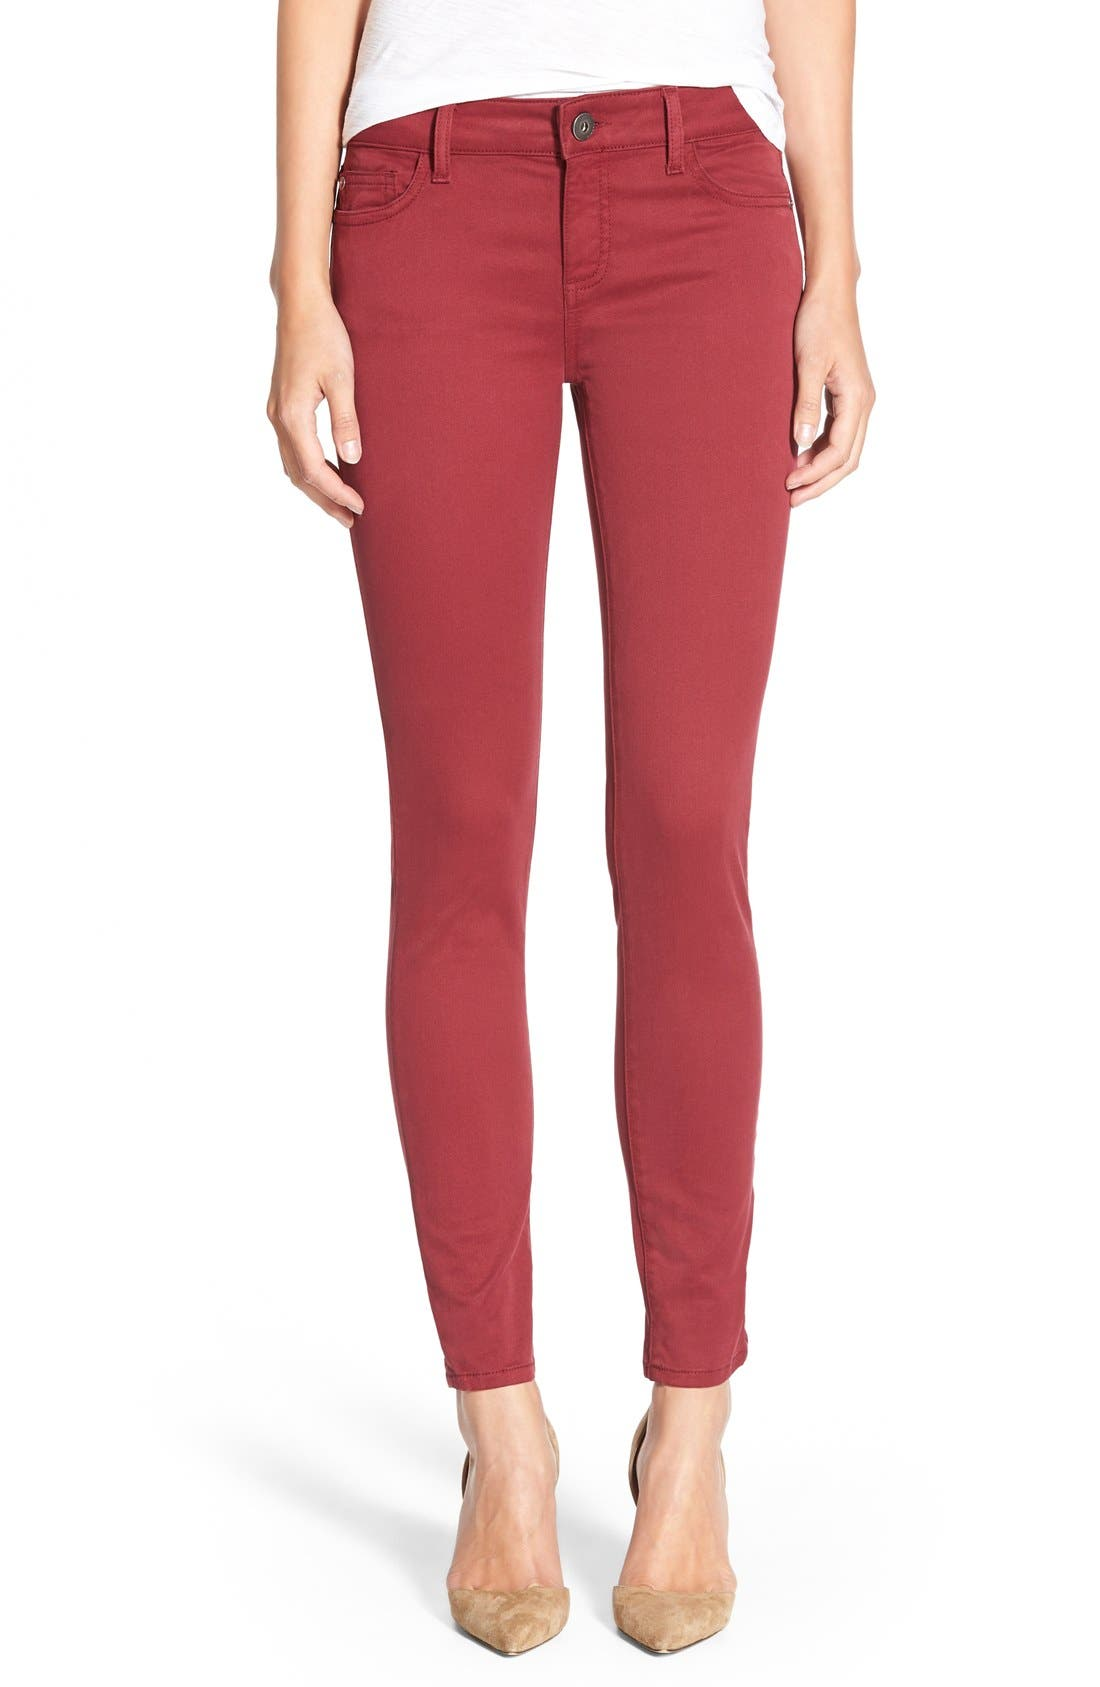 Alternate Image 1 Selected - DL1961 'Margaux' Instasculpt Ankle Jeans (Ruby)